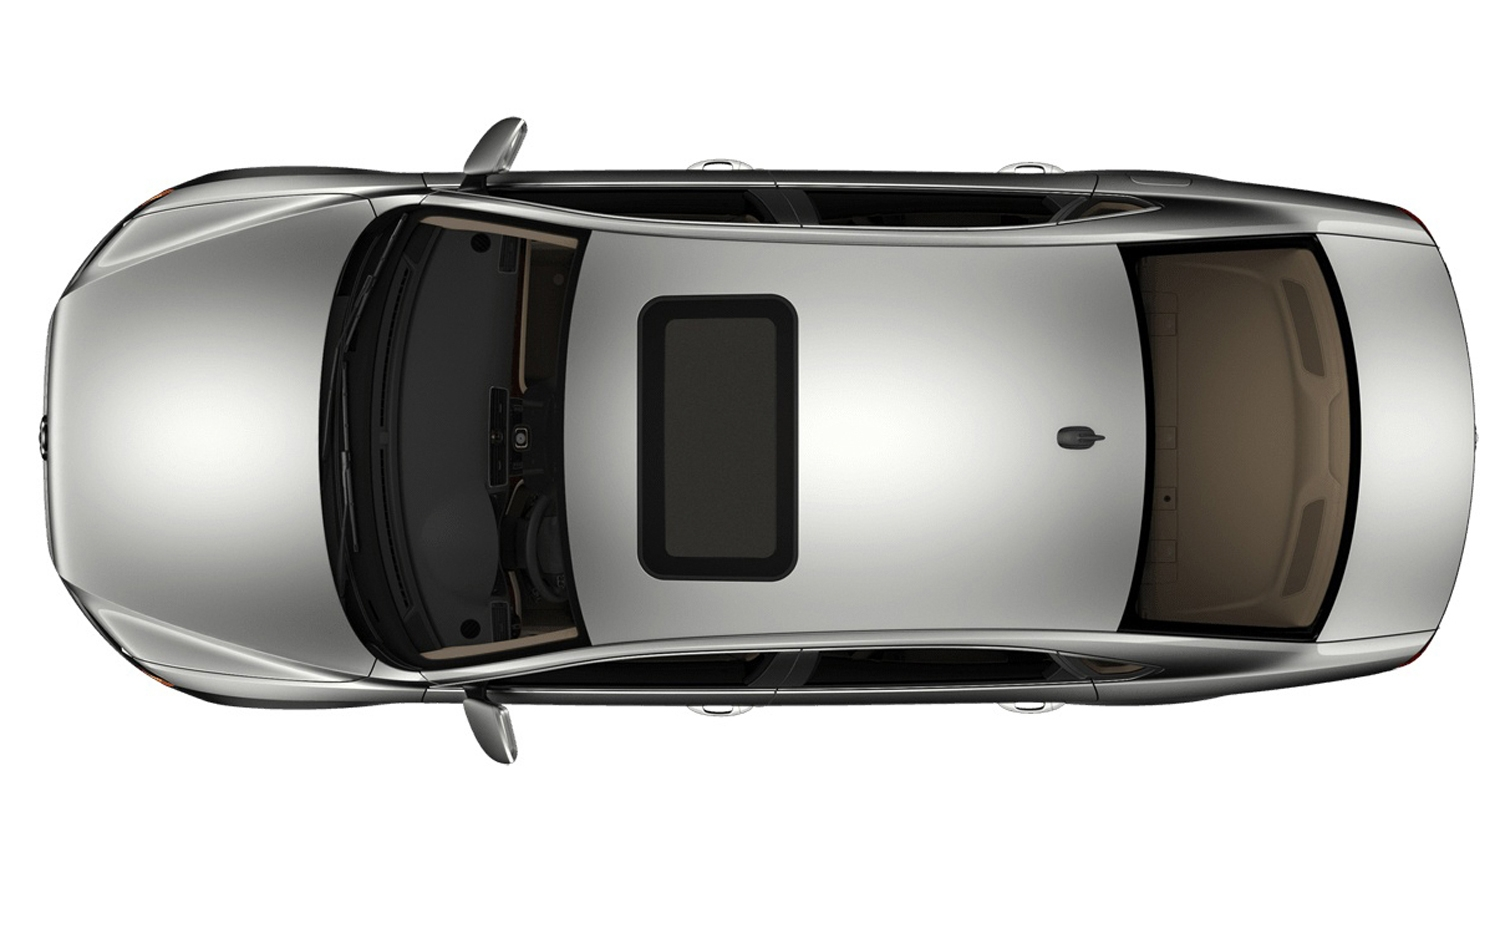 Car Top View - Car PNG Top View Png